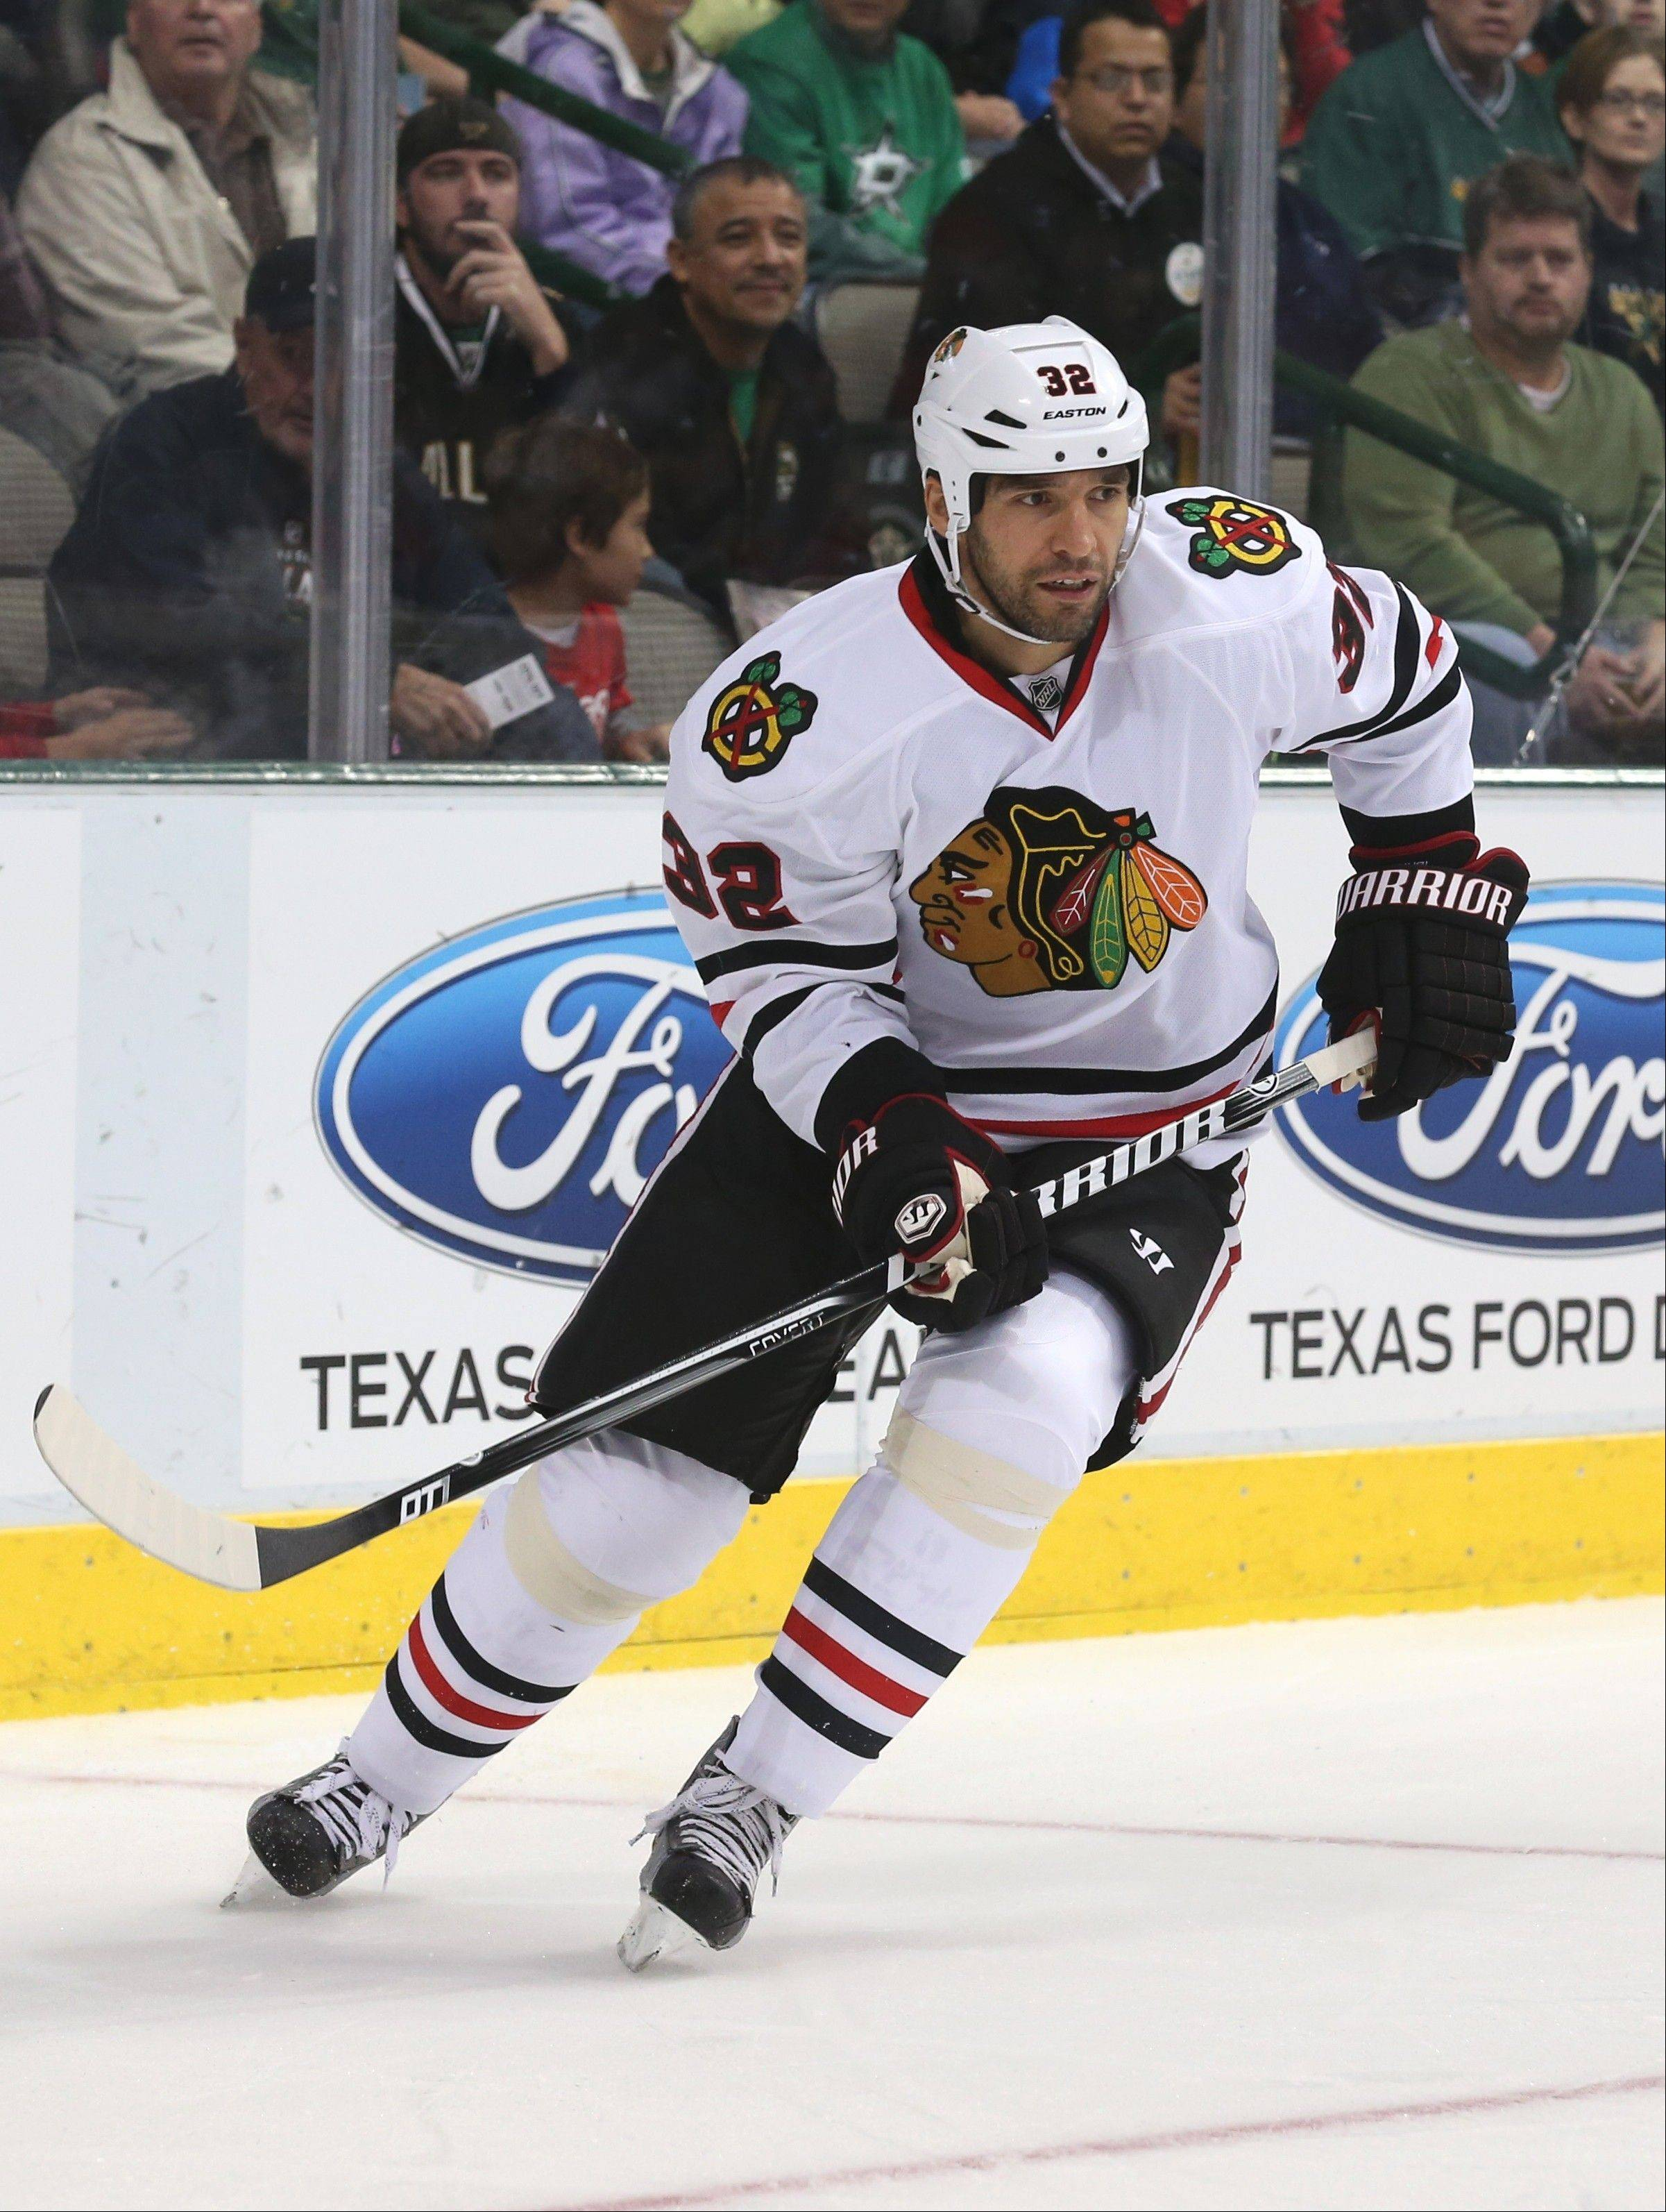 Hawks defenseman Michal Rozsival practiced Wednesday after a scary moment on the bench during Sunday's victory over Edmonton.